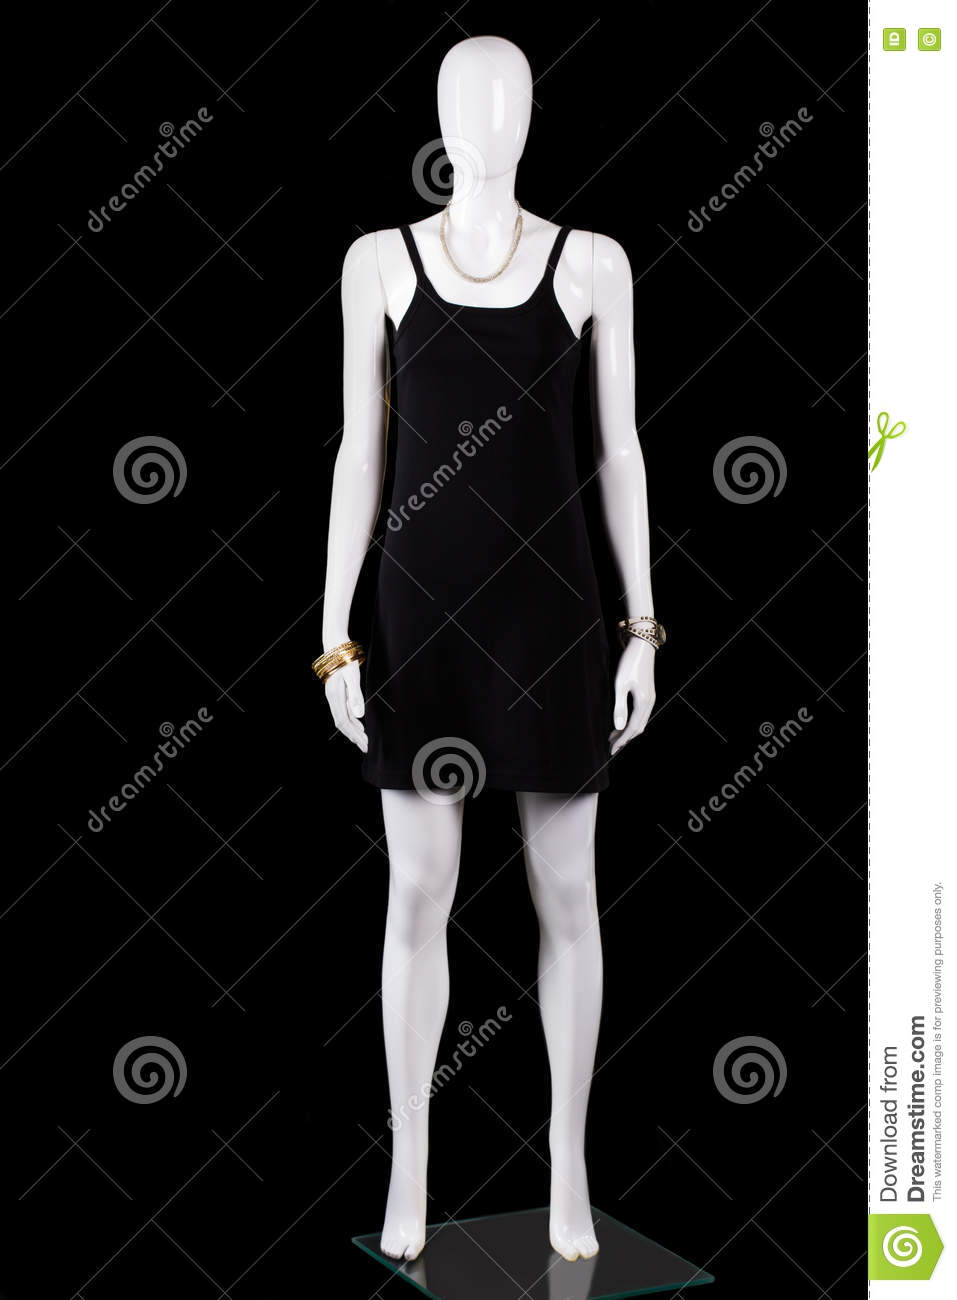 f7ed5ea69ac5a Casual Black Sleeveless Dress. Stock Image - Image of attractive ...